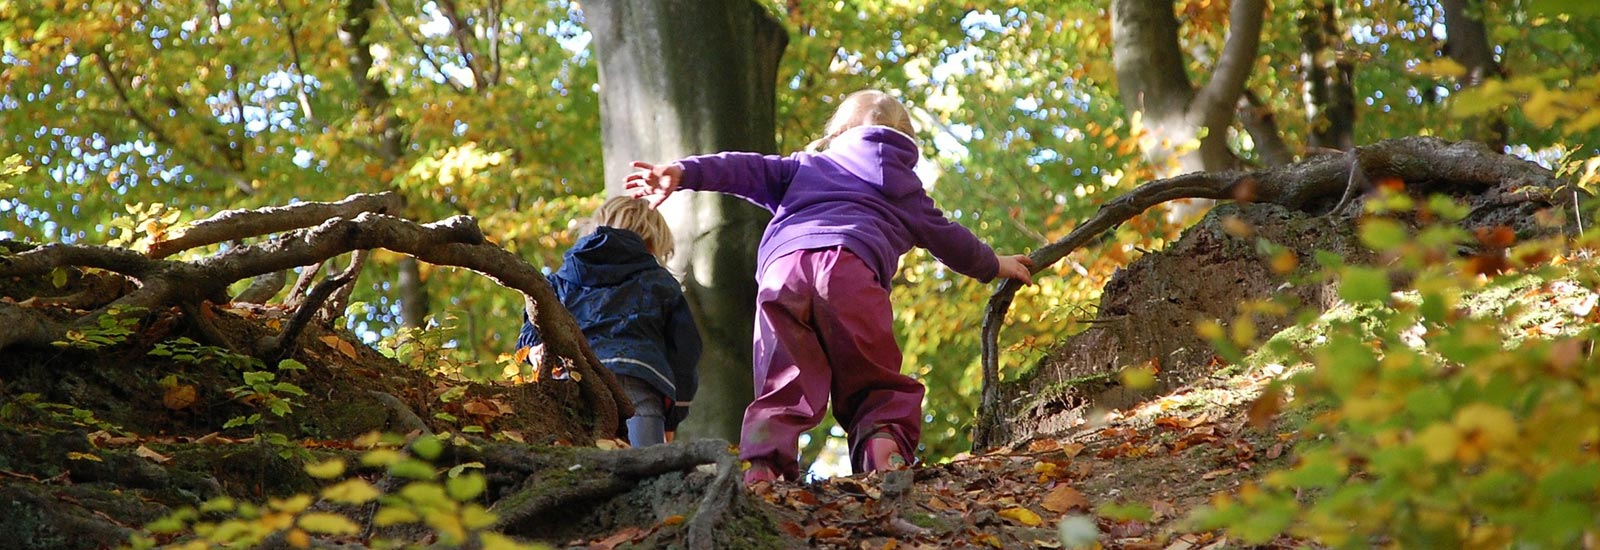 Our nursery is located close to Summerfield Park and Edgbaston Reservoir, where the children can explore and enjoy nature (under adult supervision).